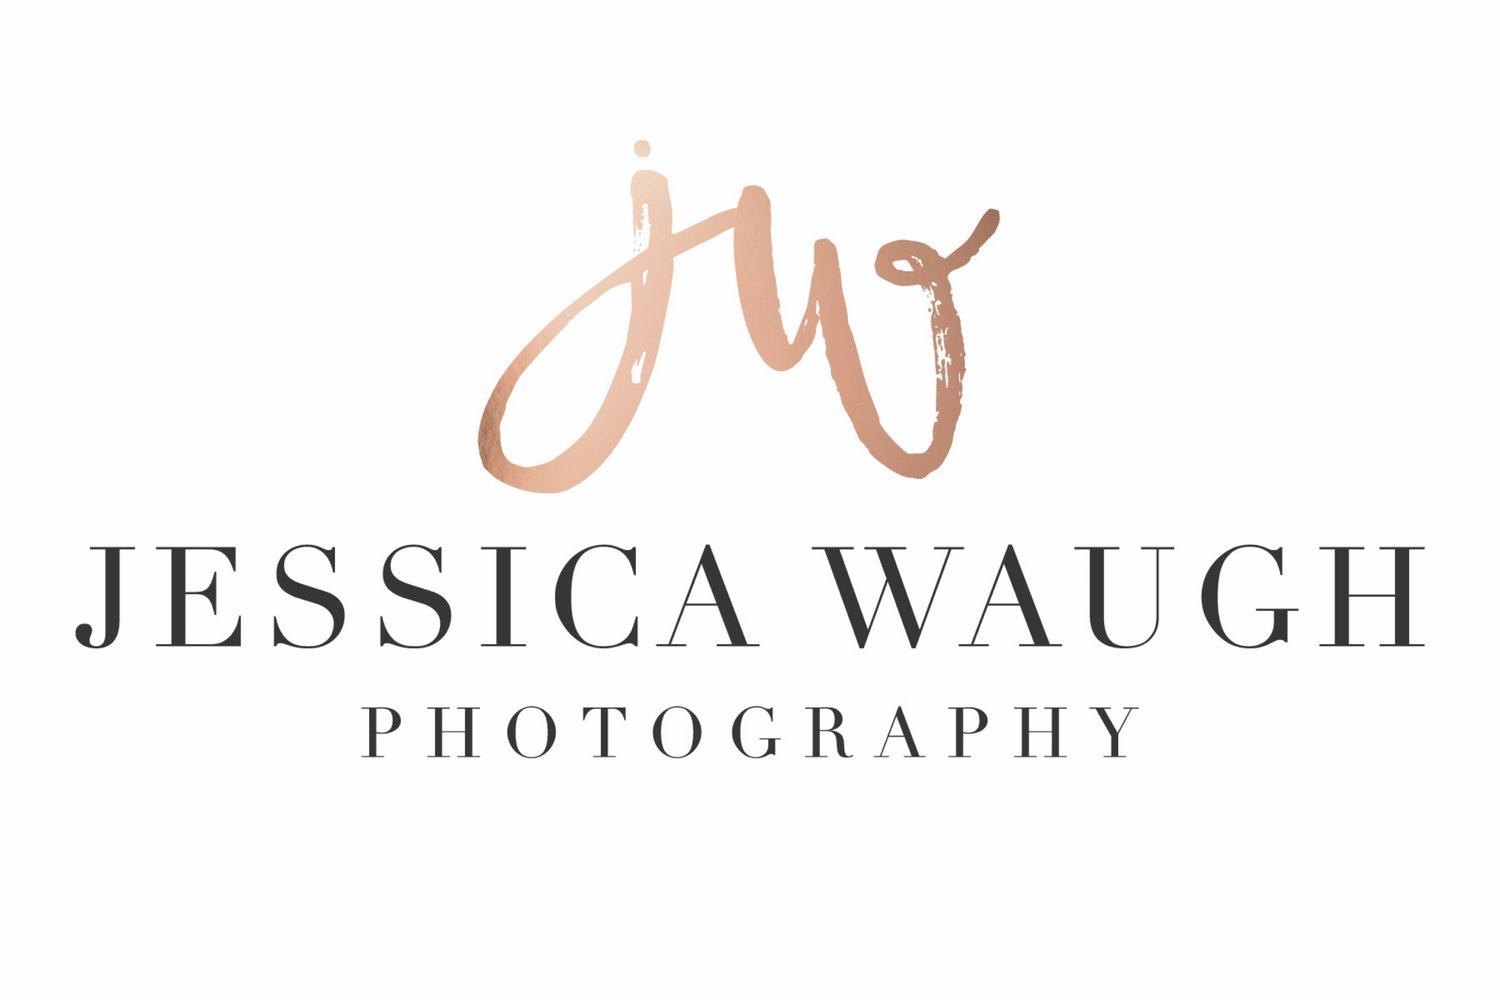 Jessica Waugh Photography